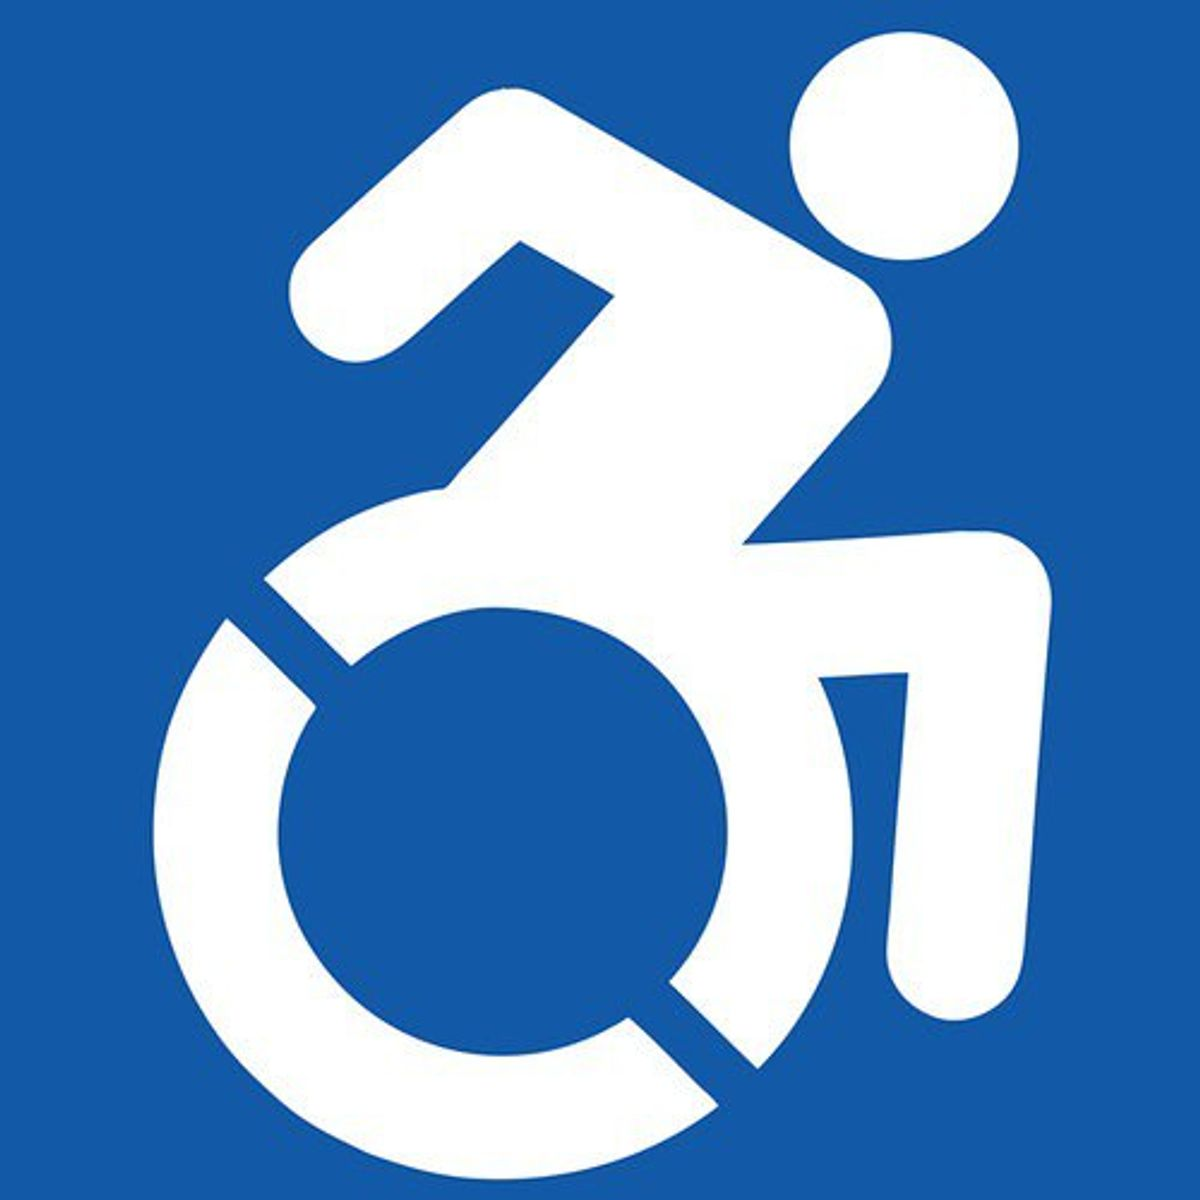 Activism By Design: The Accessible Icon